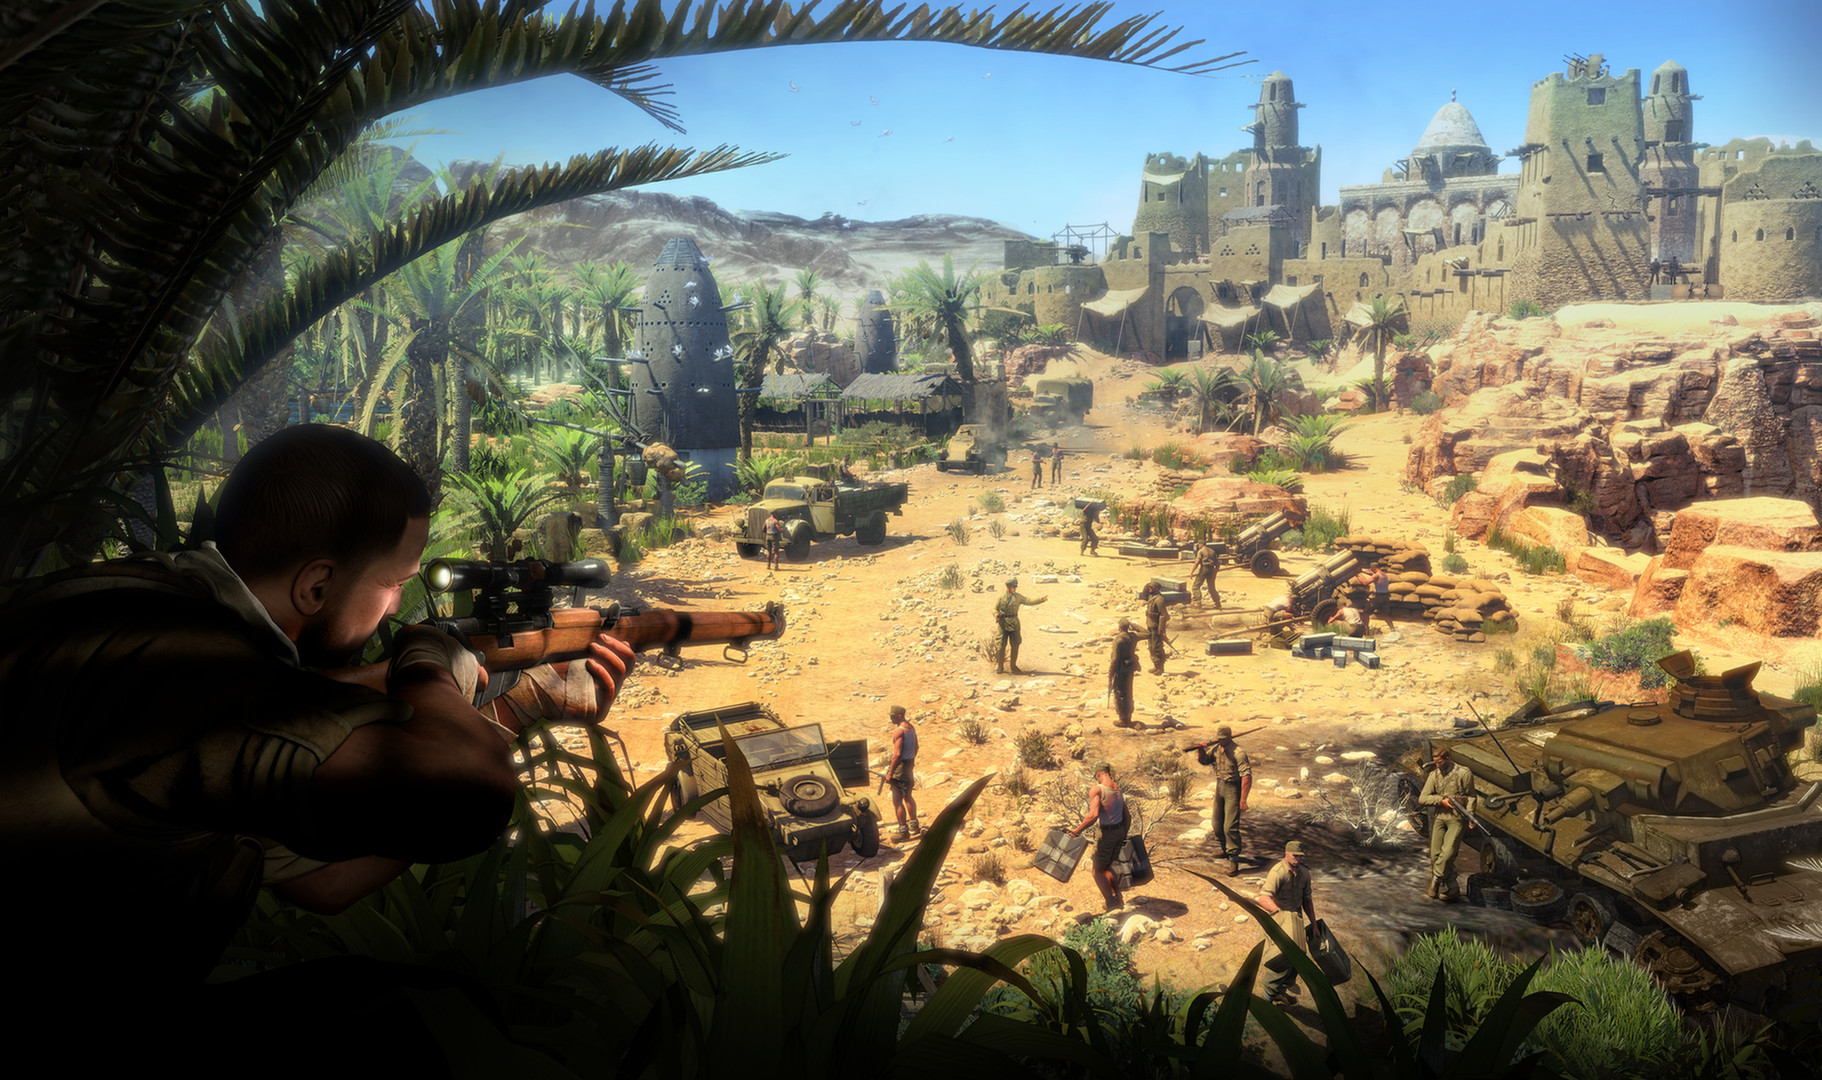 Download Game PC Sniper Elite 3 Update V1.04